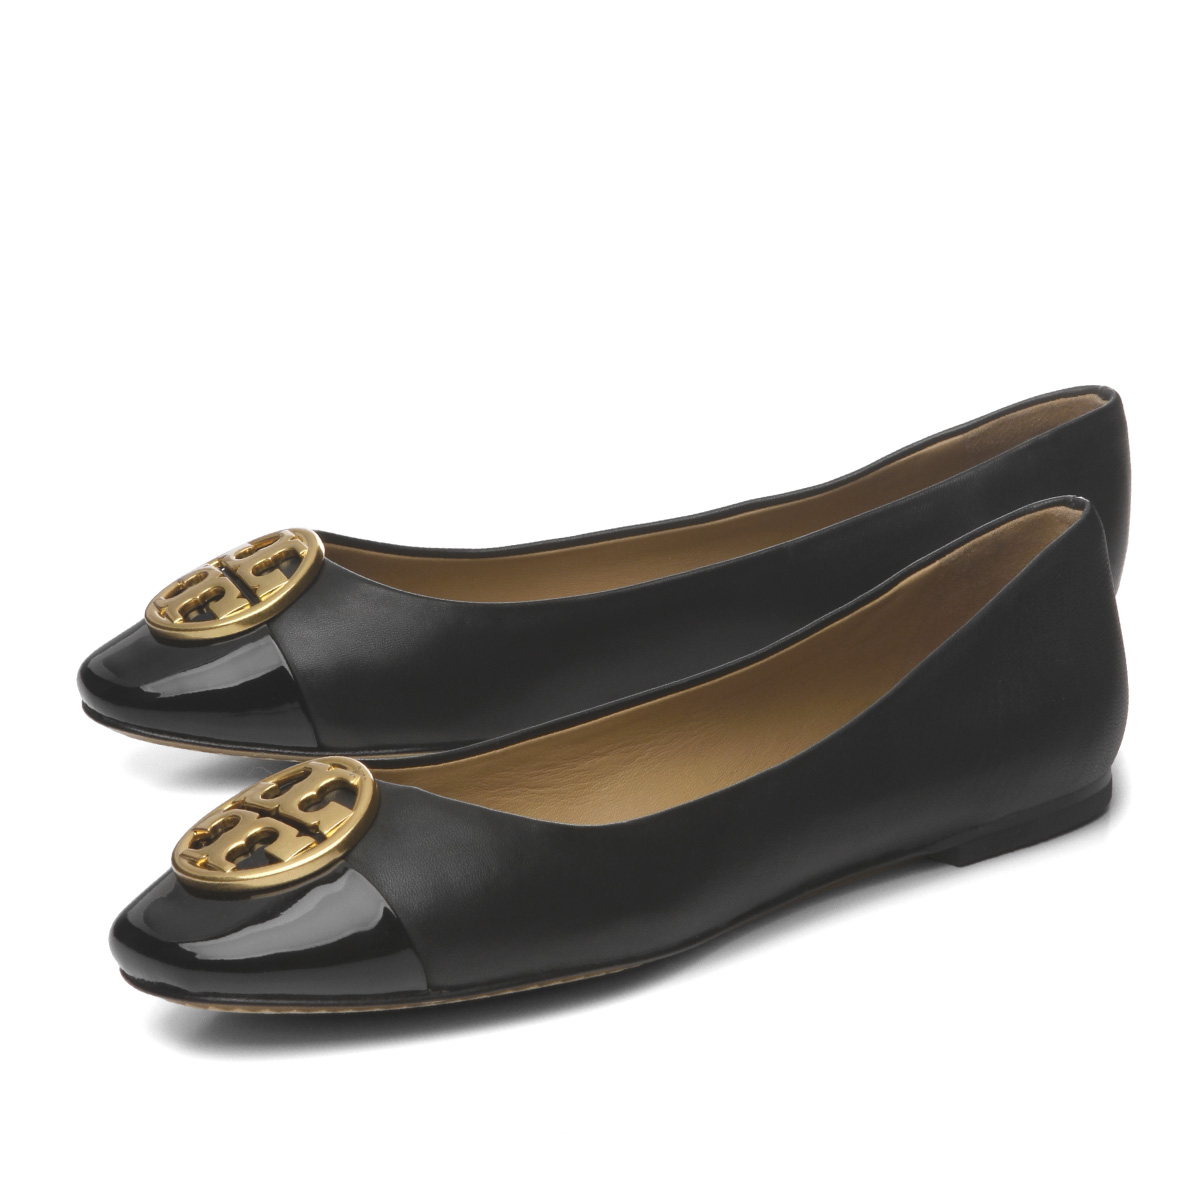 ef0208ea6db7 Tolly Birch TORY BURCH shoes Lady s 46882 009 ballet shoes CHELSEA Chelsea  BLACK BLACK black